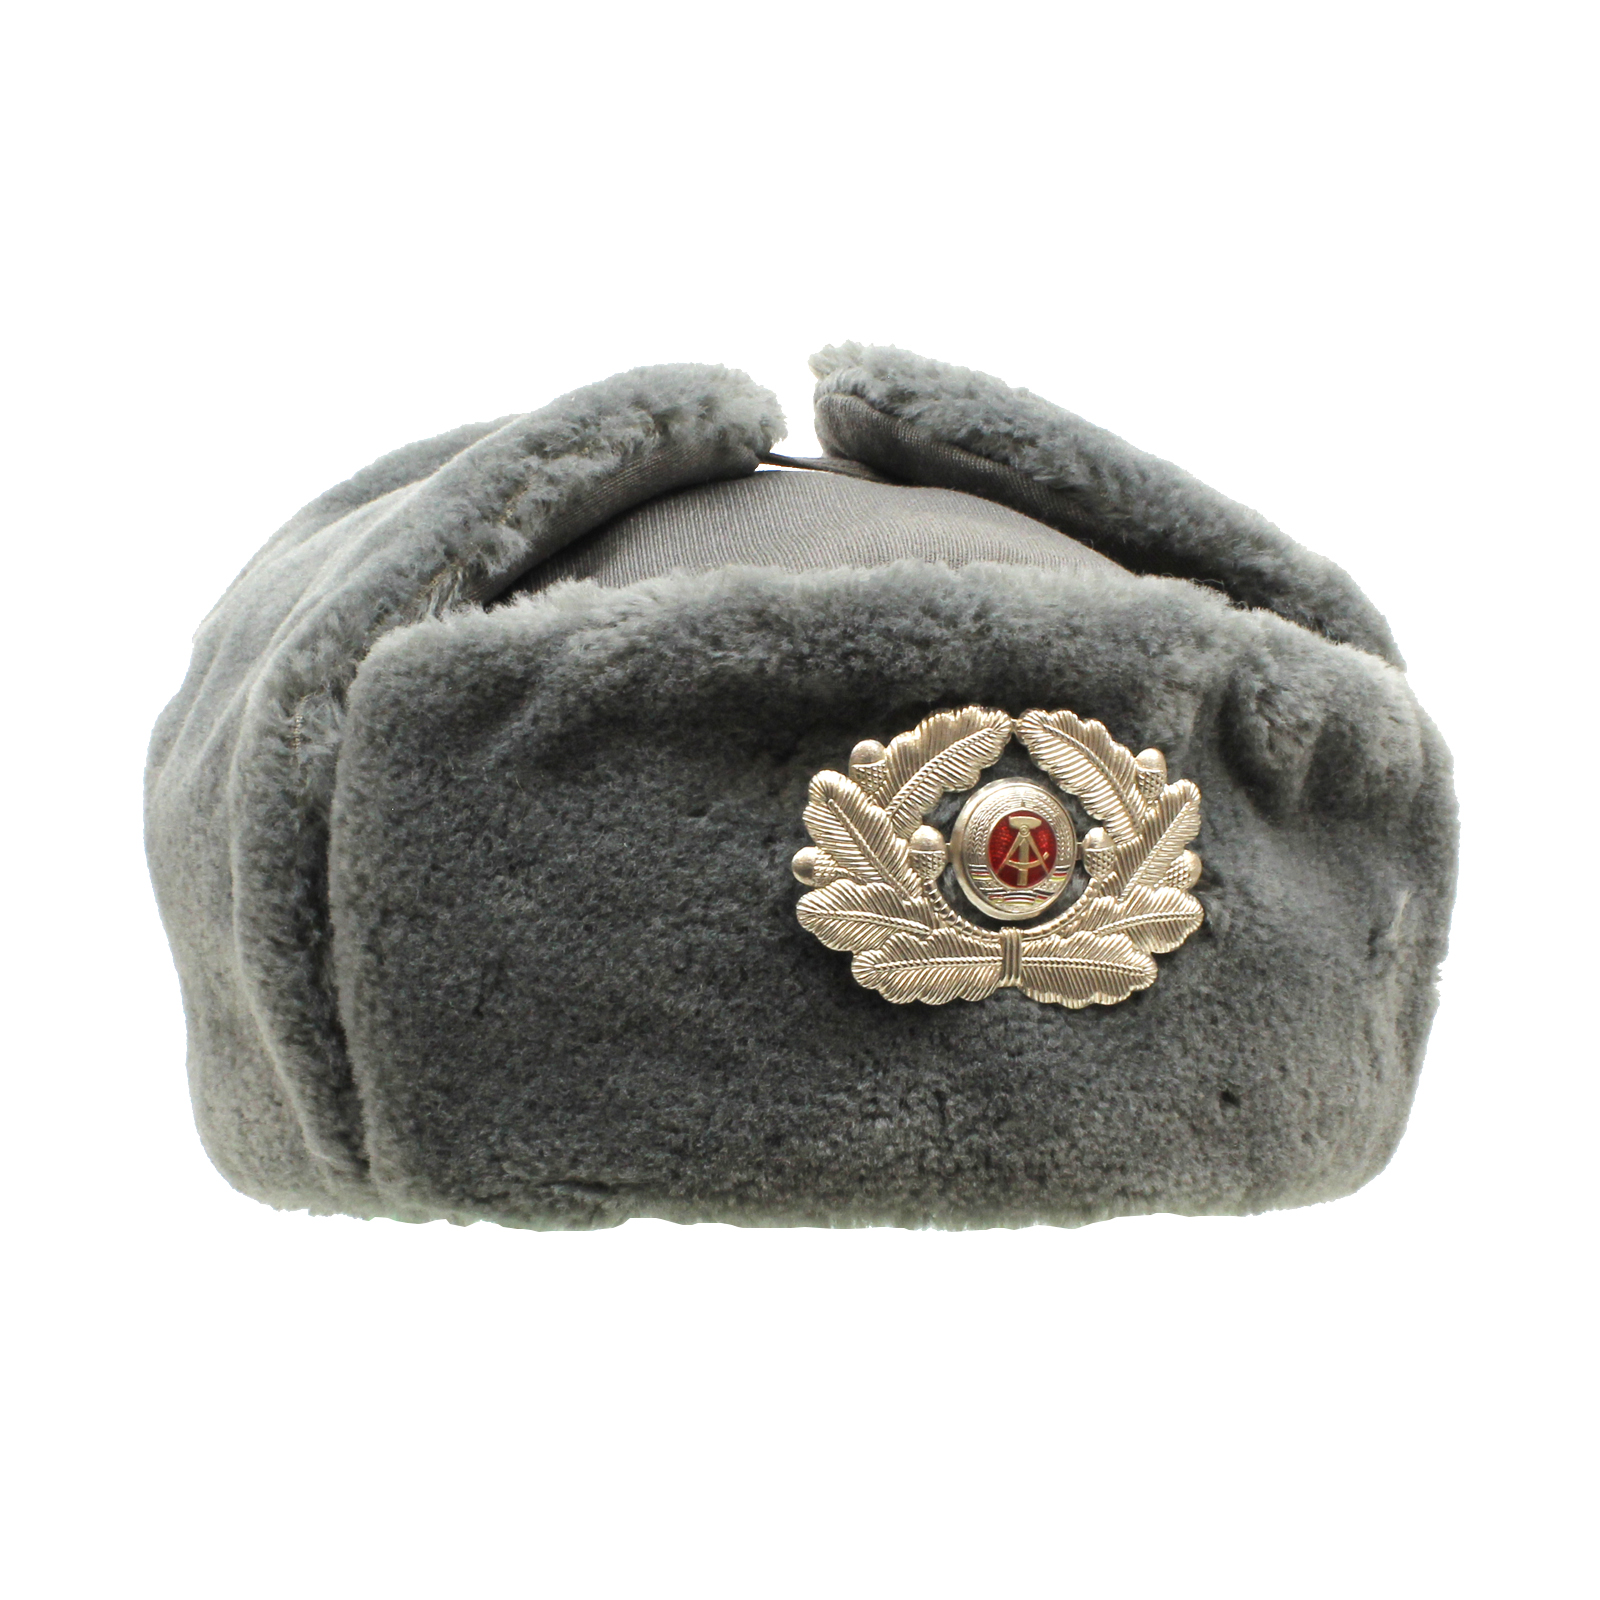 EAST GERMAN FUR HAT OFFICER - MILITARY SURPLUS WINTER   CLOTHING ... 6b1c13ac938